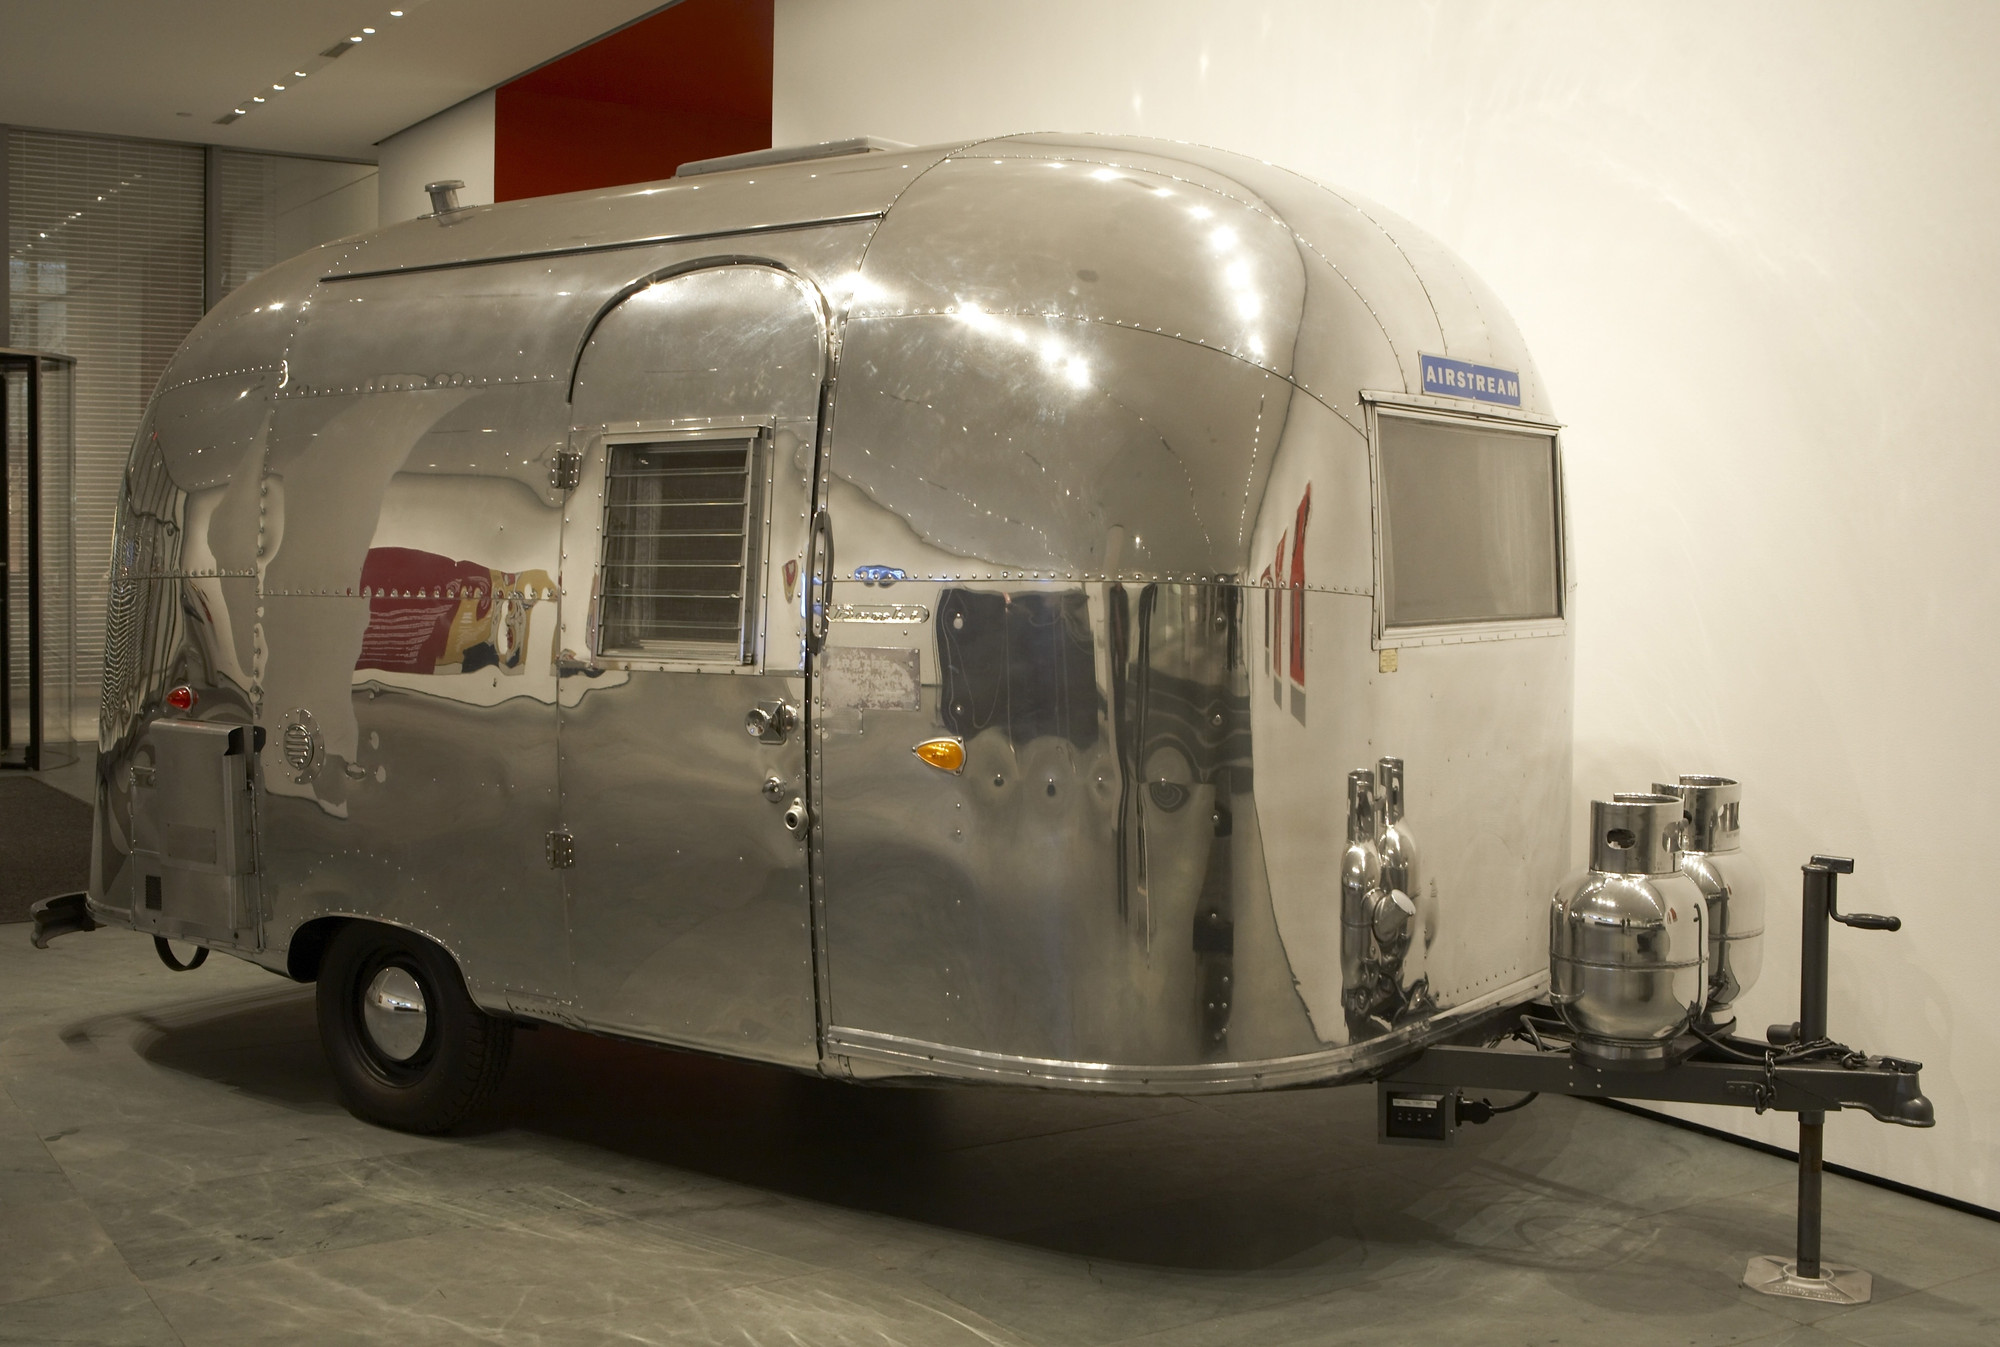 Airstream Travel Trailers >> On the Road: Airstream Bambi Travel Trailer | MoMA